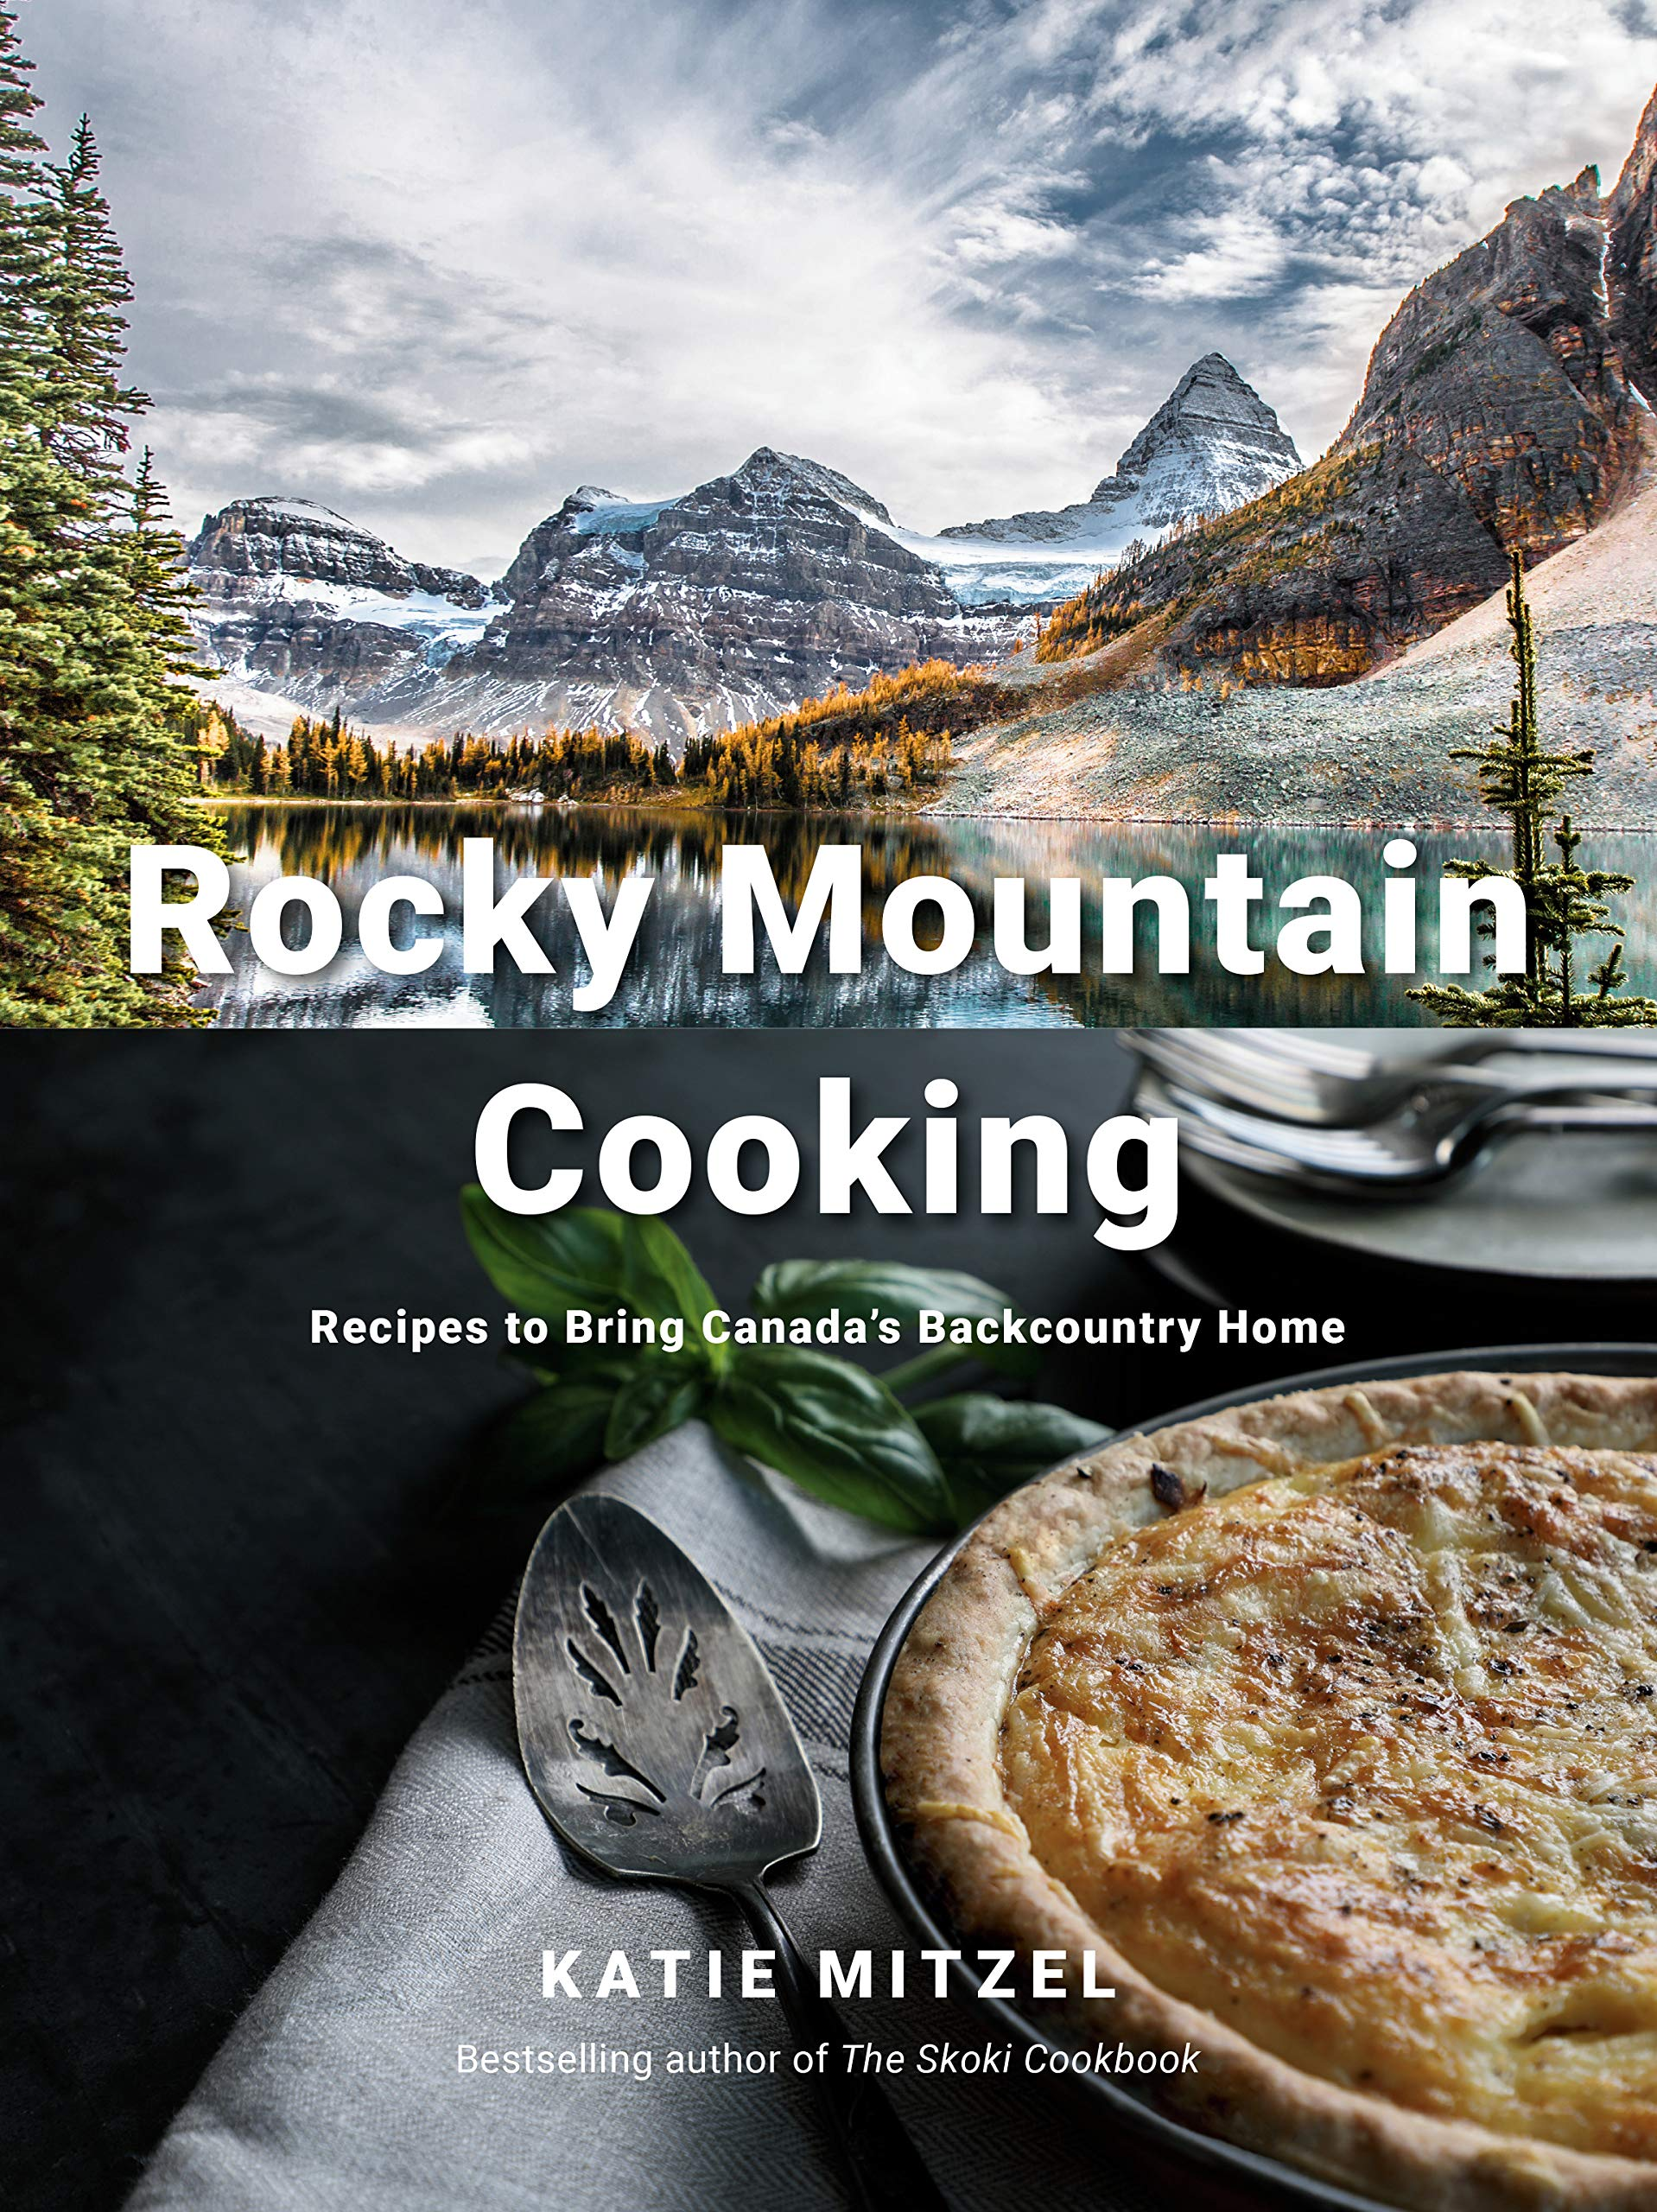 Rocky Mountain Cooking  Recipes To Bring Canada's Backcountry Home